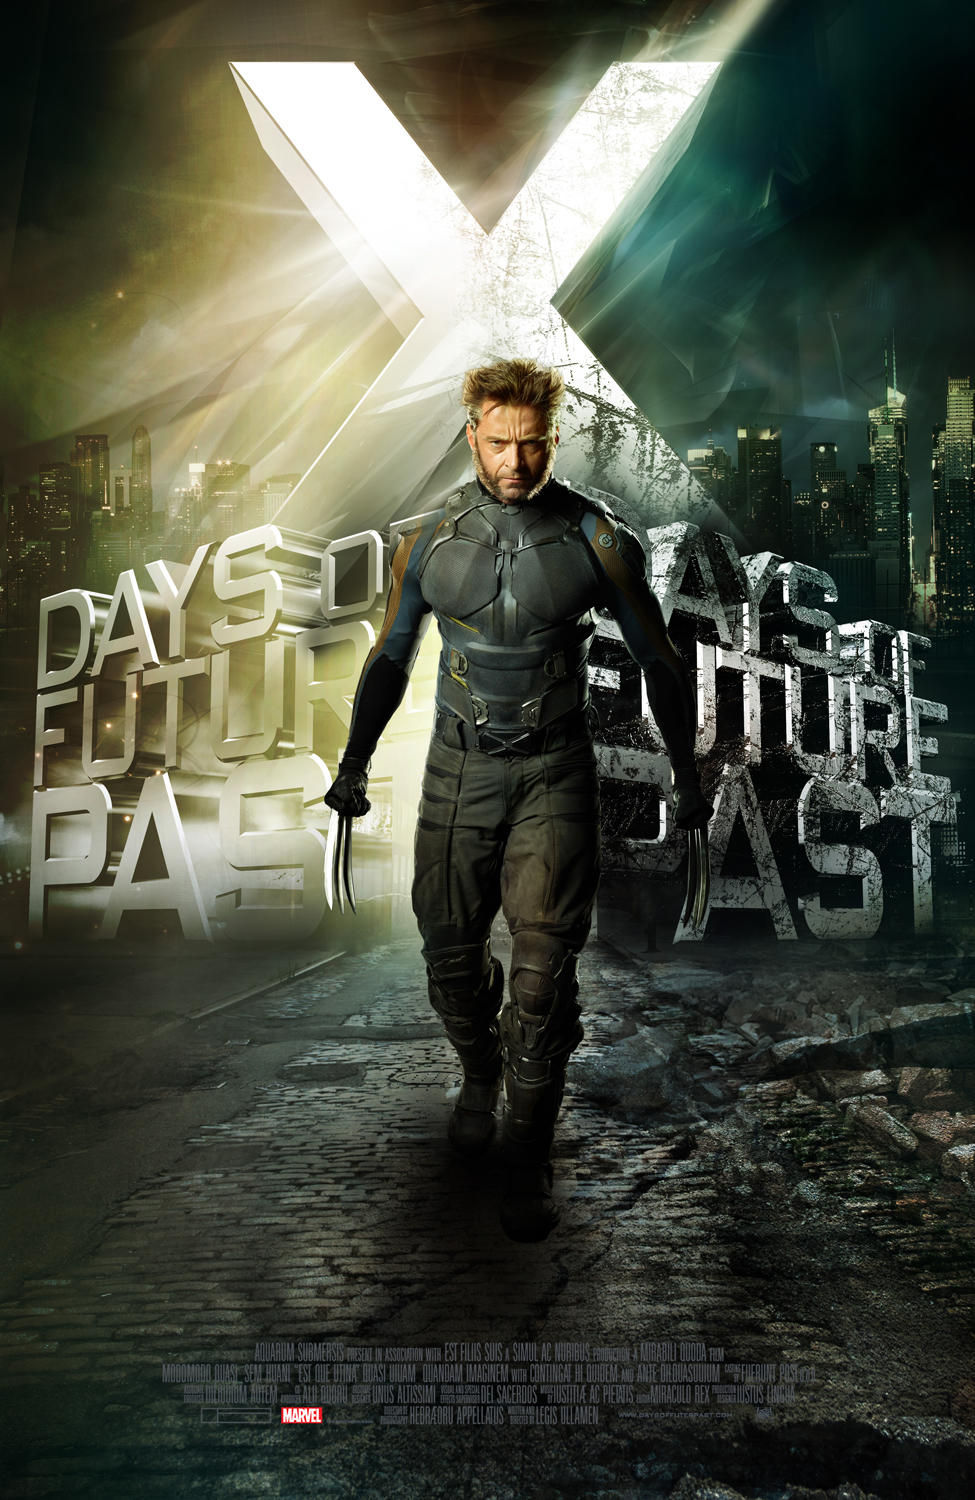 X Men Days Of Future Past Reveals Nine Very Dramatic New Posters